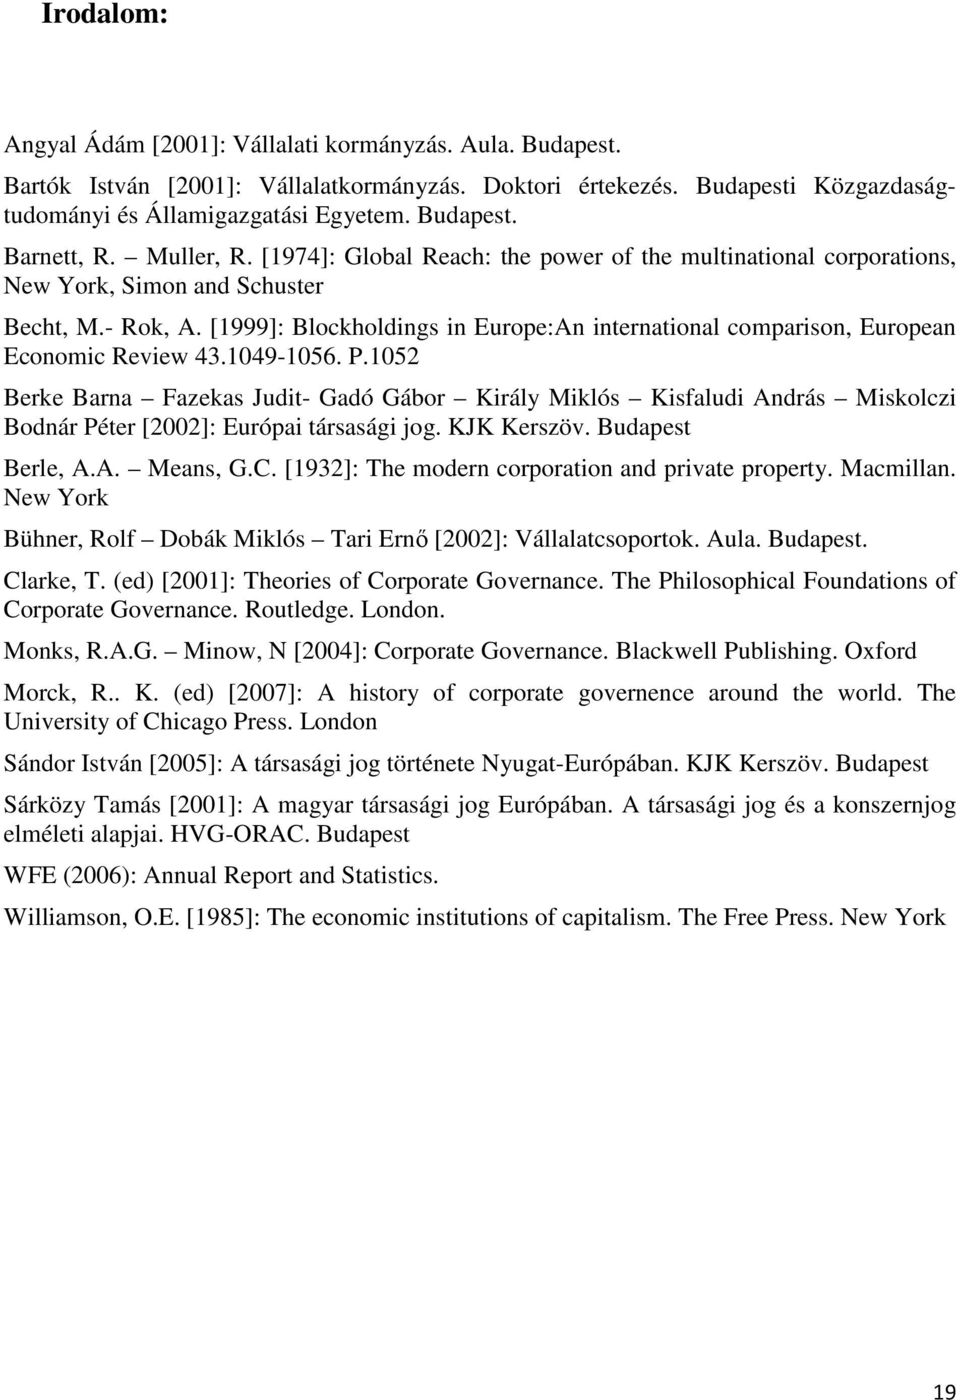 [1999]: Blockholdings in Europe:An international comparison, European Economic Review 43.1049-1056. P.